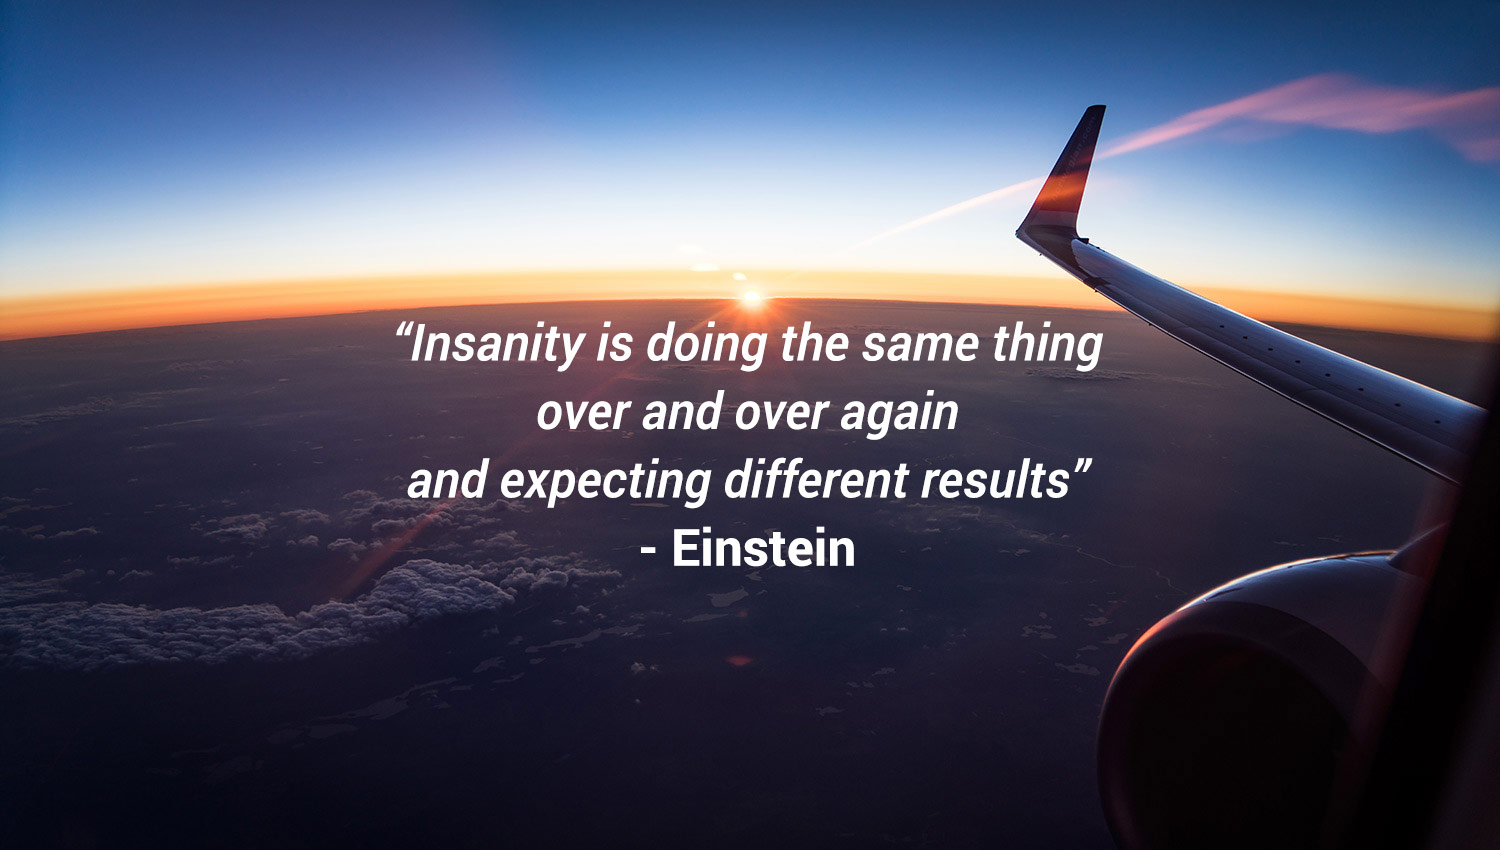 Einstein-quote.jpg